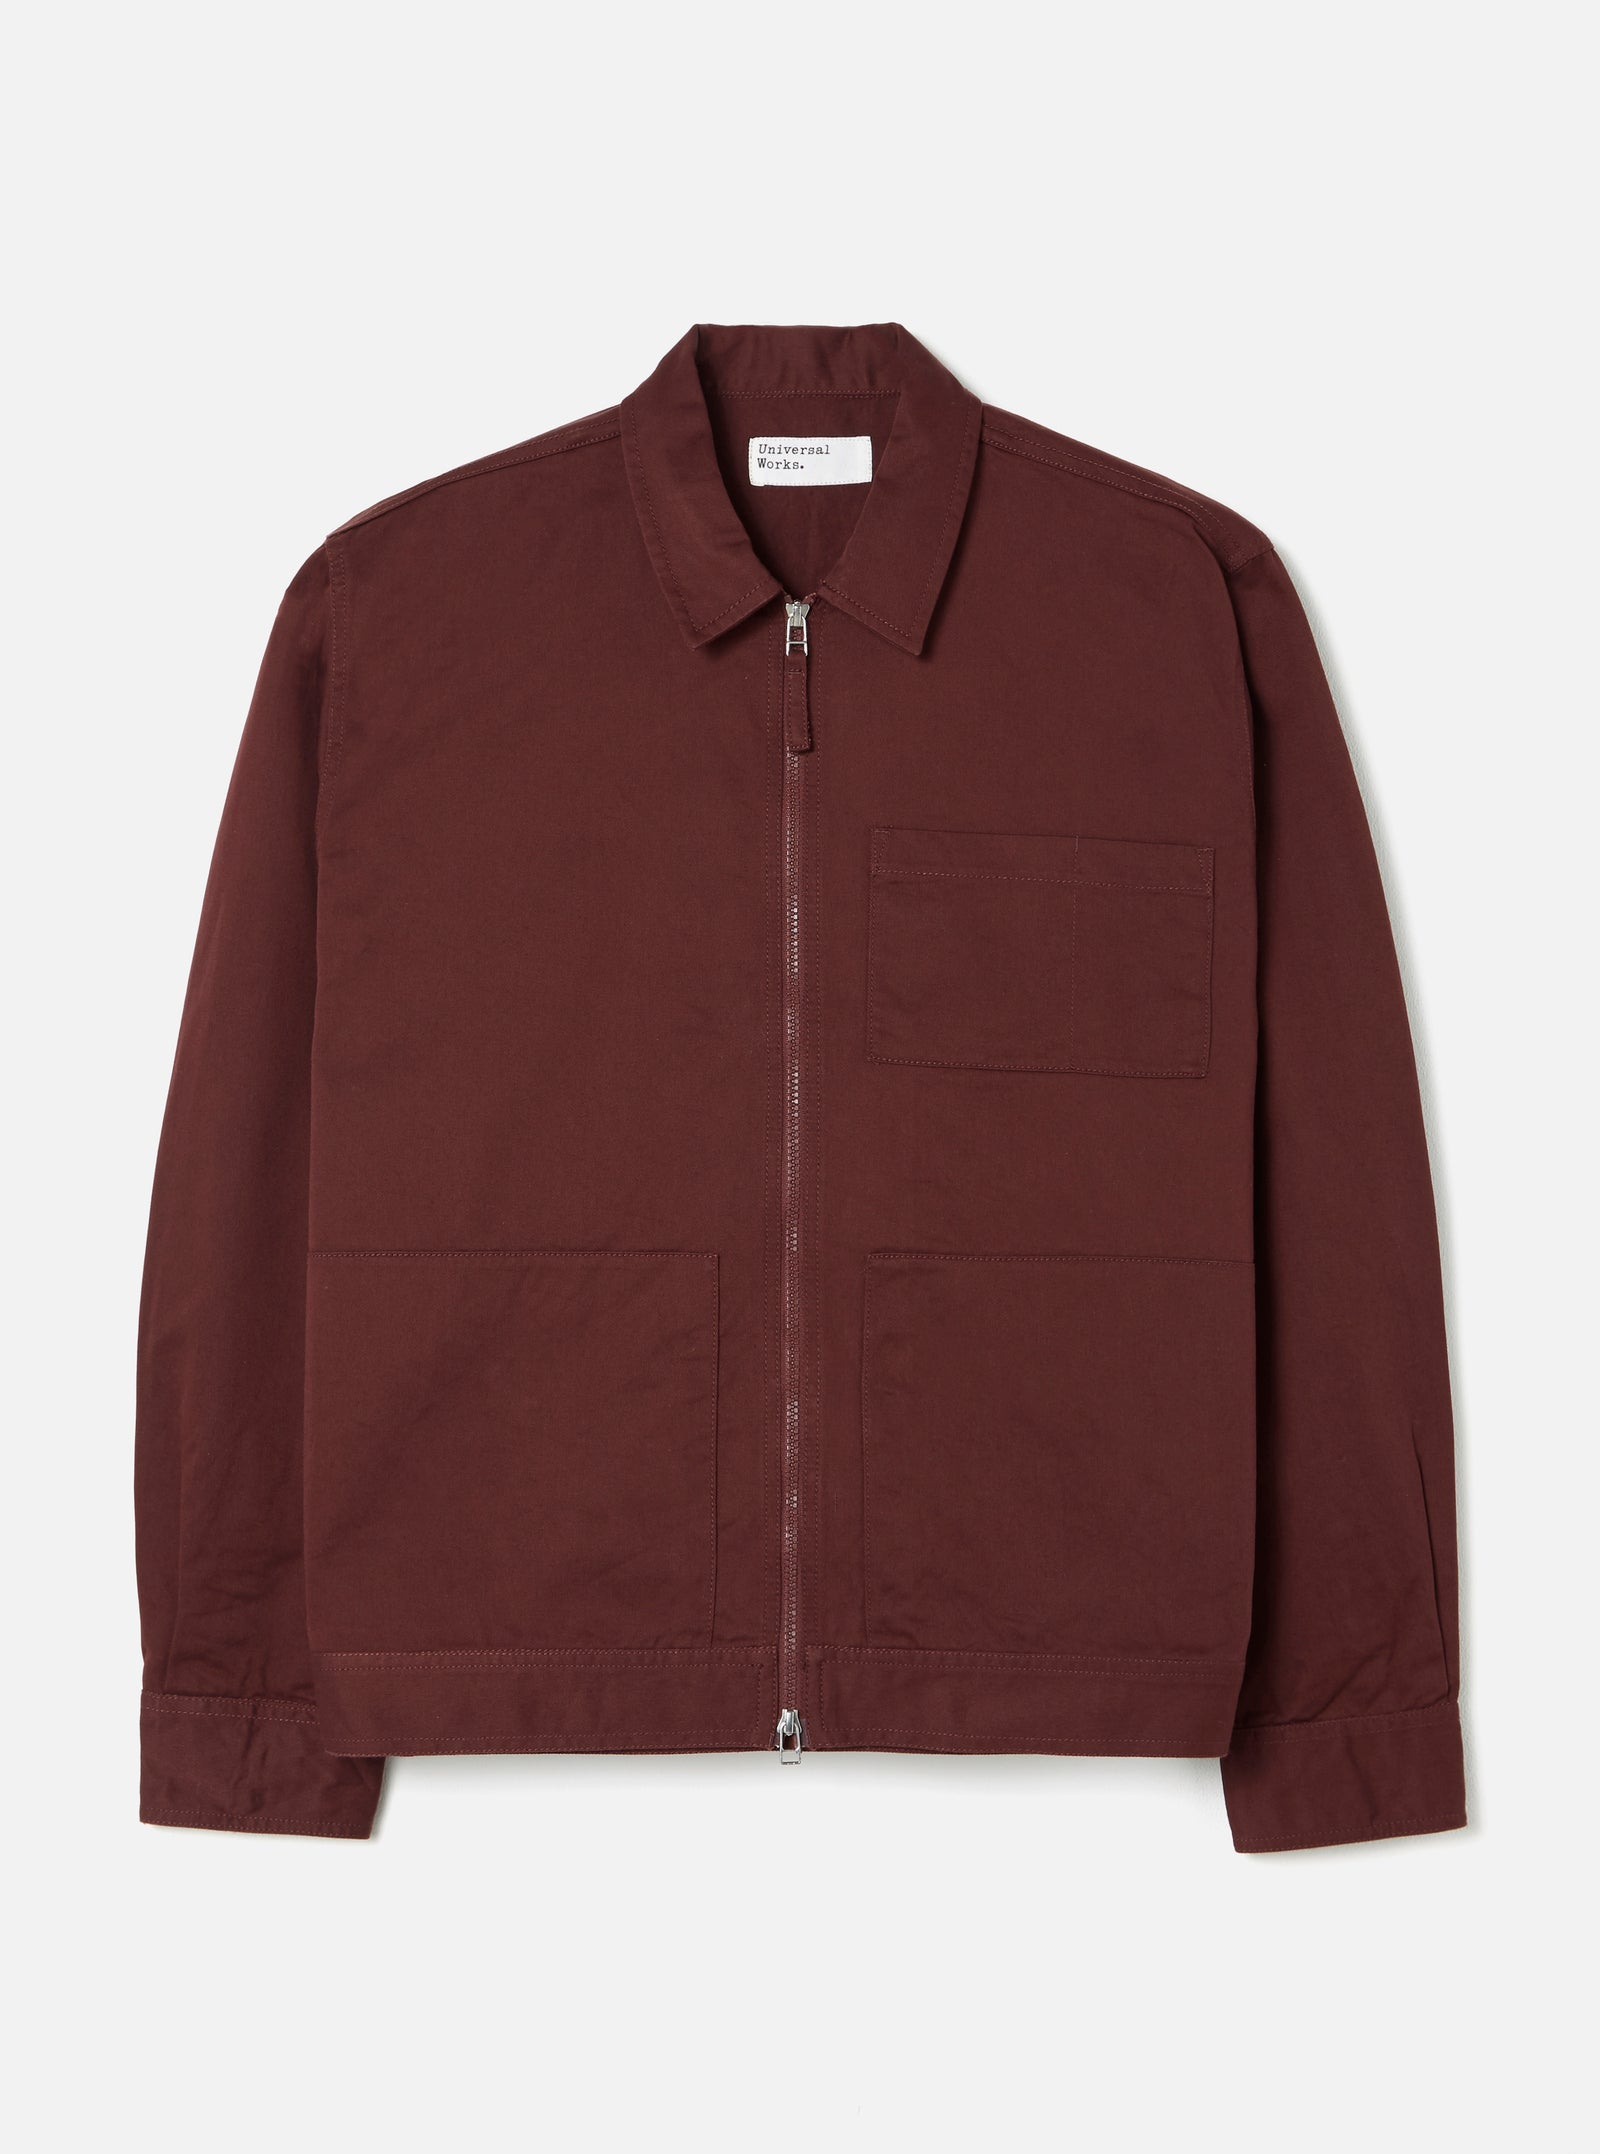 Universal Works Zip Uniform Jacket in Raisin Twill